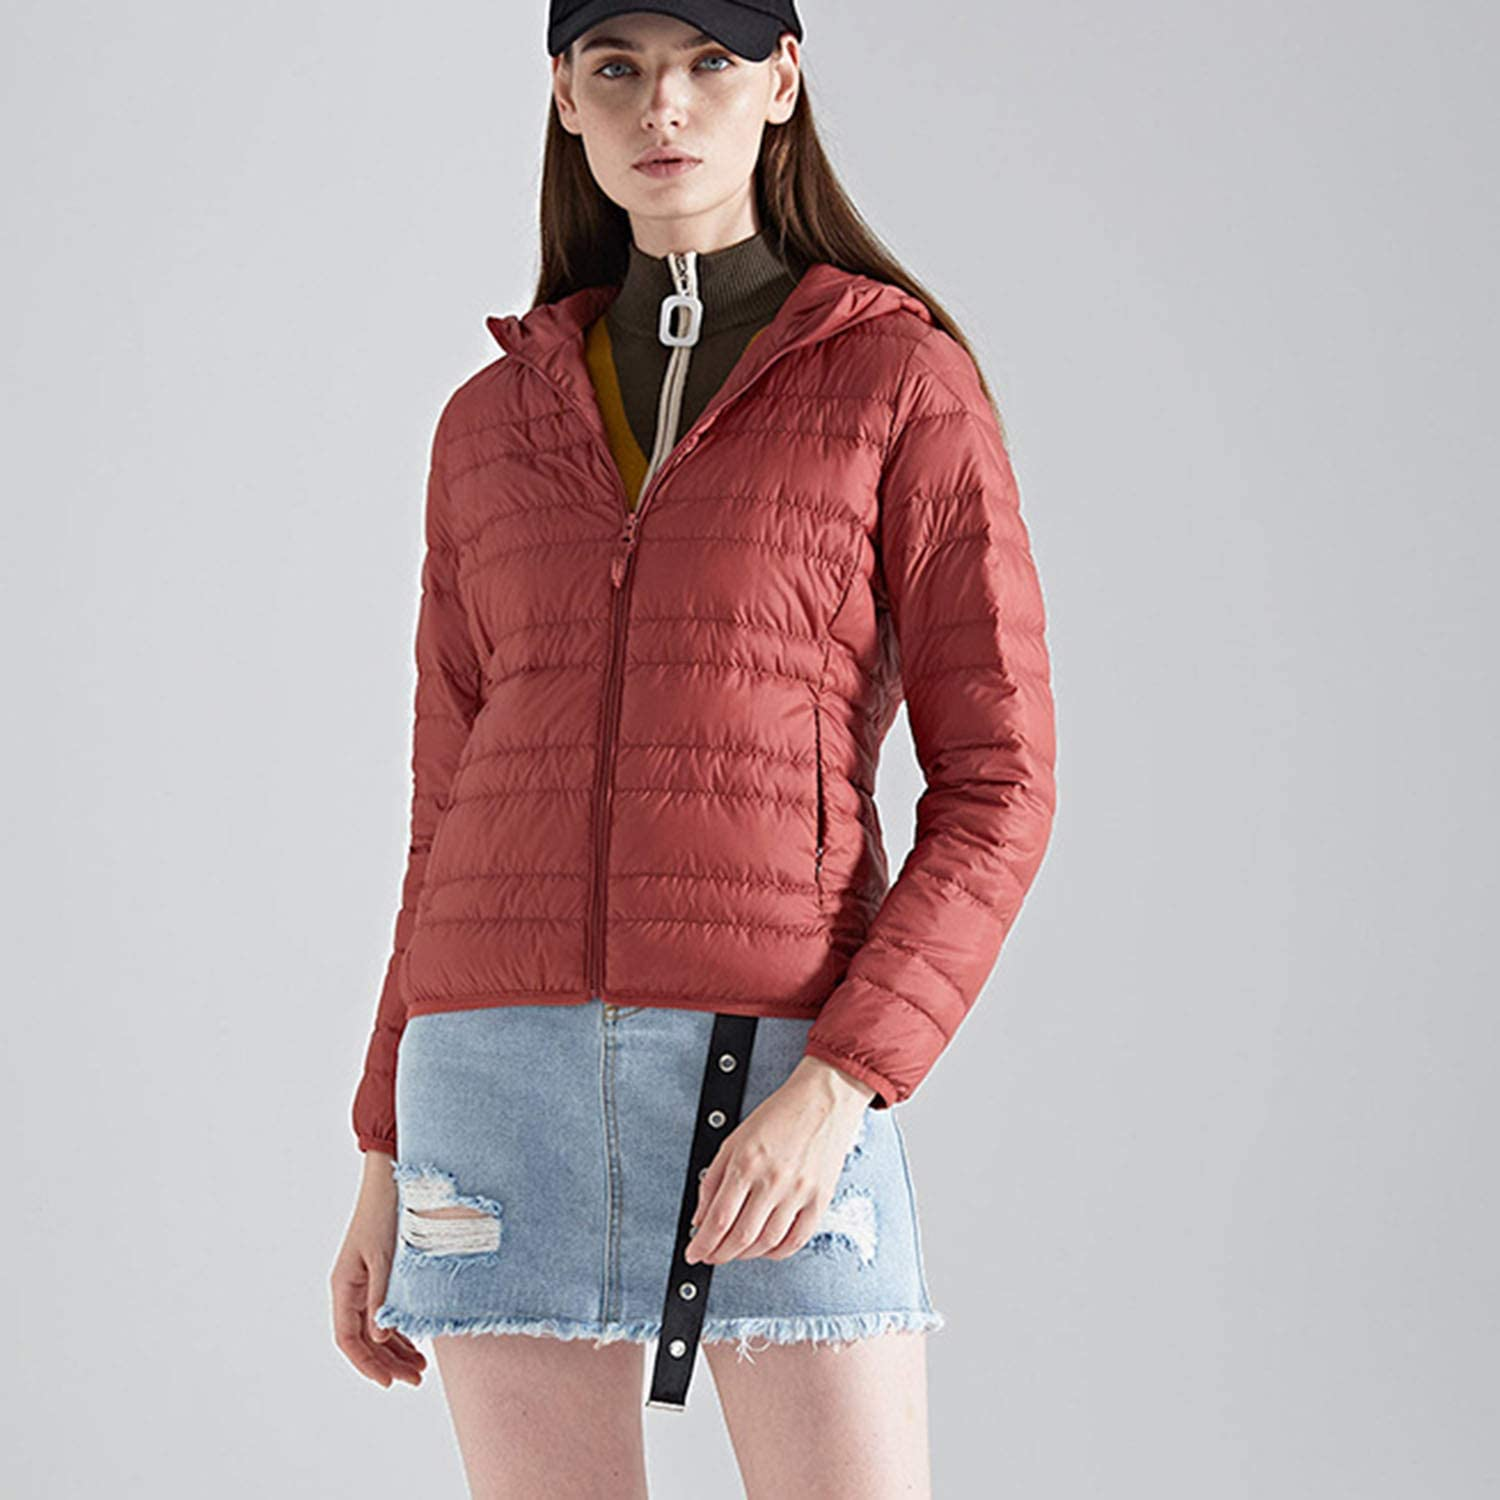 YXXHM- Lightweight Down Jacket, Women's Hooded Short Section, Ladies And Women's Style, Autumn And Winter Wear, Women's Jacket